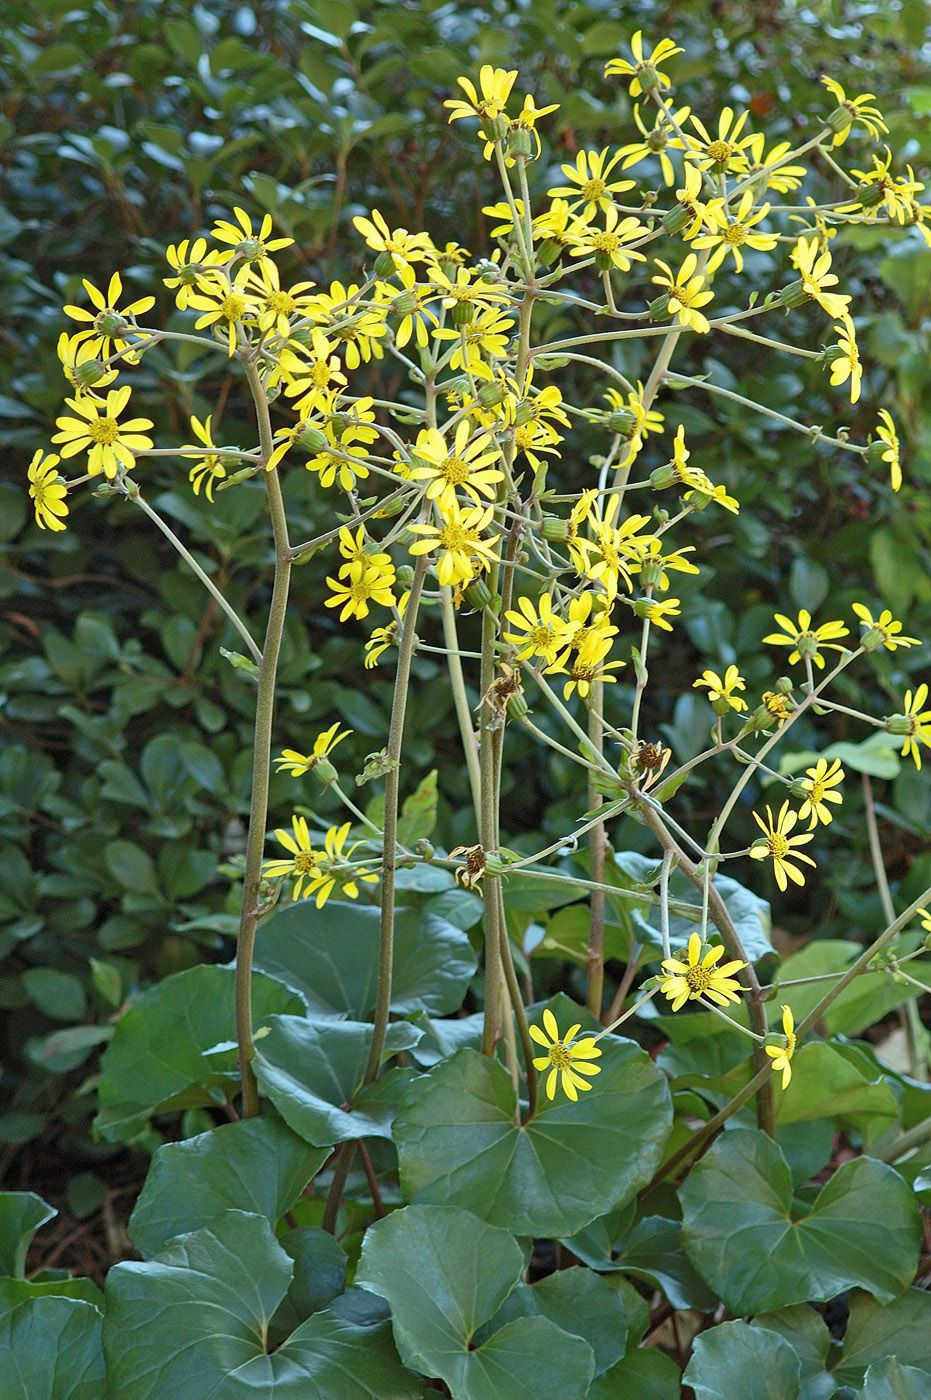 The leopard plant is a hardy shade loving plant that typically flowers izmirmasajfo